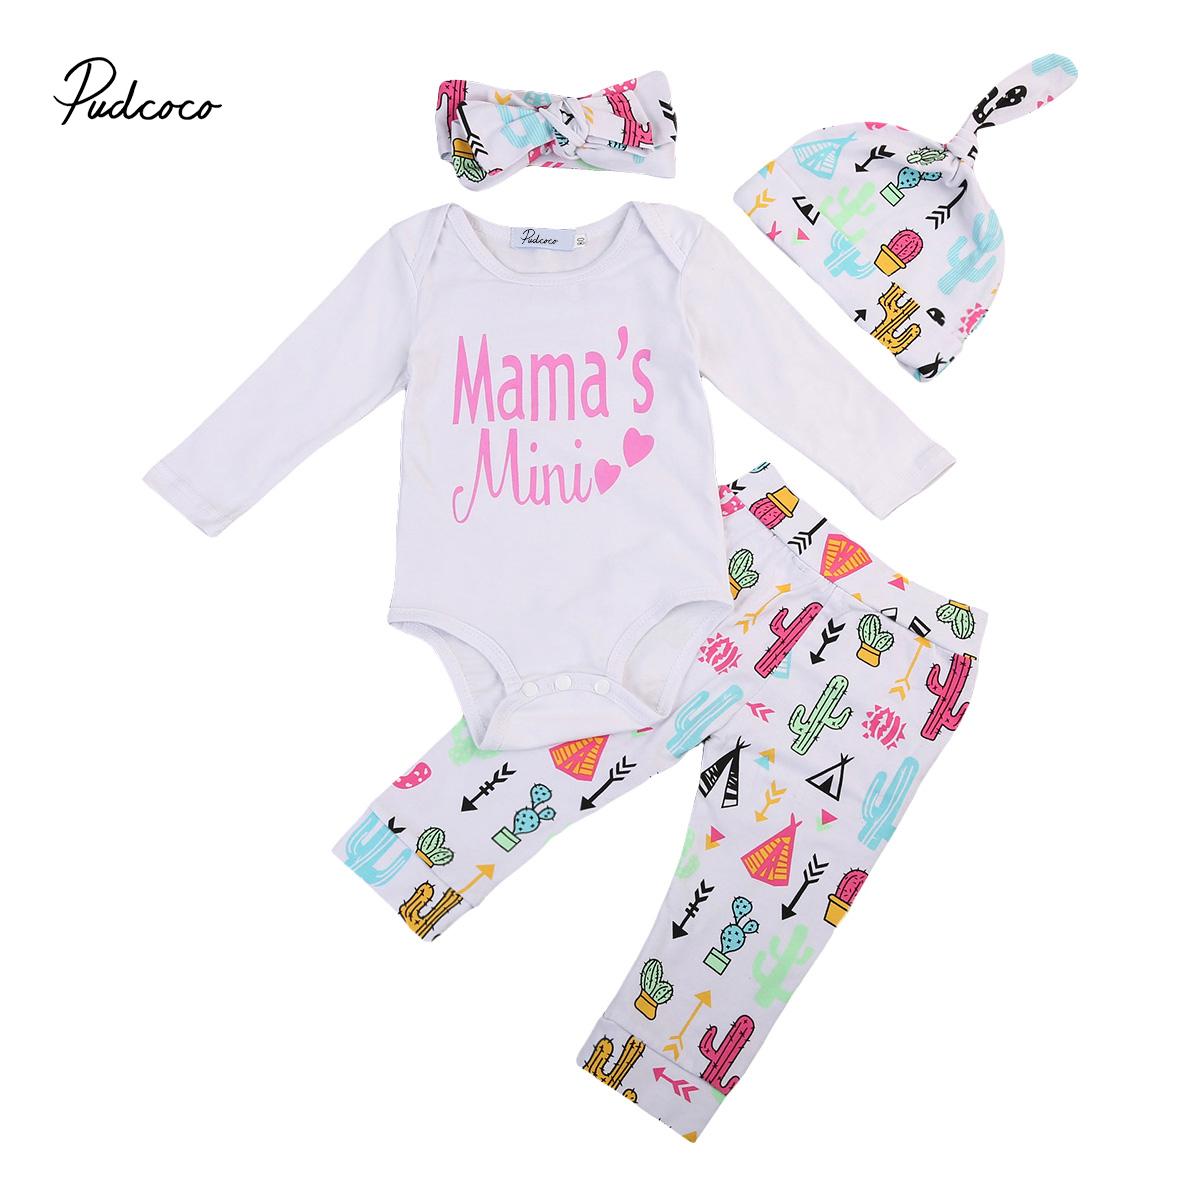 0-24M Newborn Toddler Baby Girls Winter Clothes Romper Jumpsuit Bodysuit+Pants Leggings Outfits Set 4pcs Cotton Infant Clothing fashion 2pcs set newborn baby girls jumpsuit toddler girls flower pattern outfit clothes romper bodysuit pants